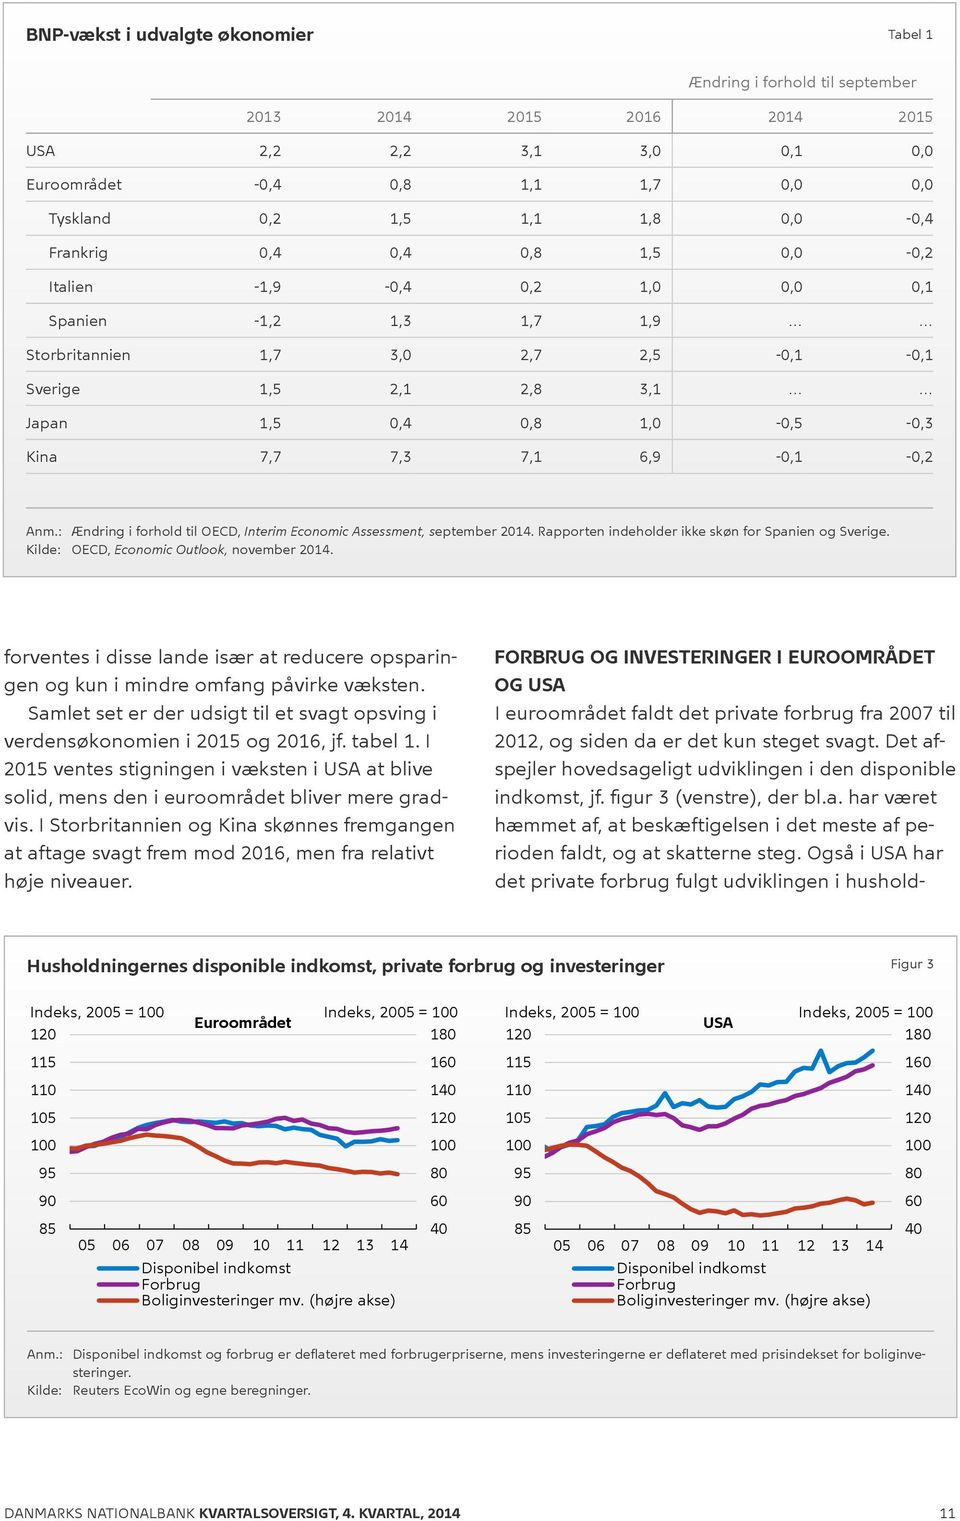 : Ændring i forhold til OECD, Interim Economic Assessment, september 214. Rapporten indeholder ikke skøn for Spanien og Sverige. Kilde: OECD, Economic Outlook, november 214.